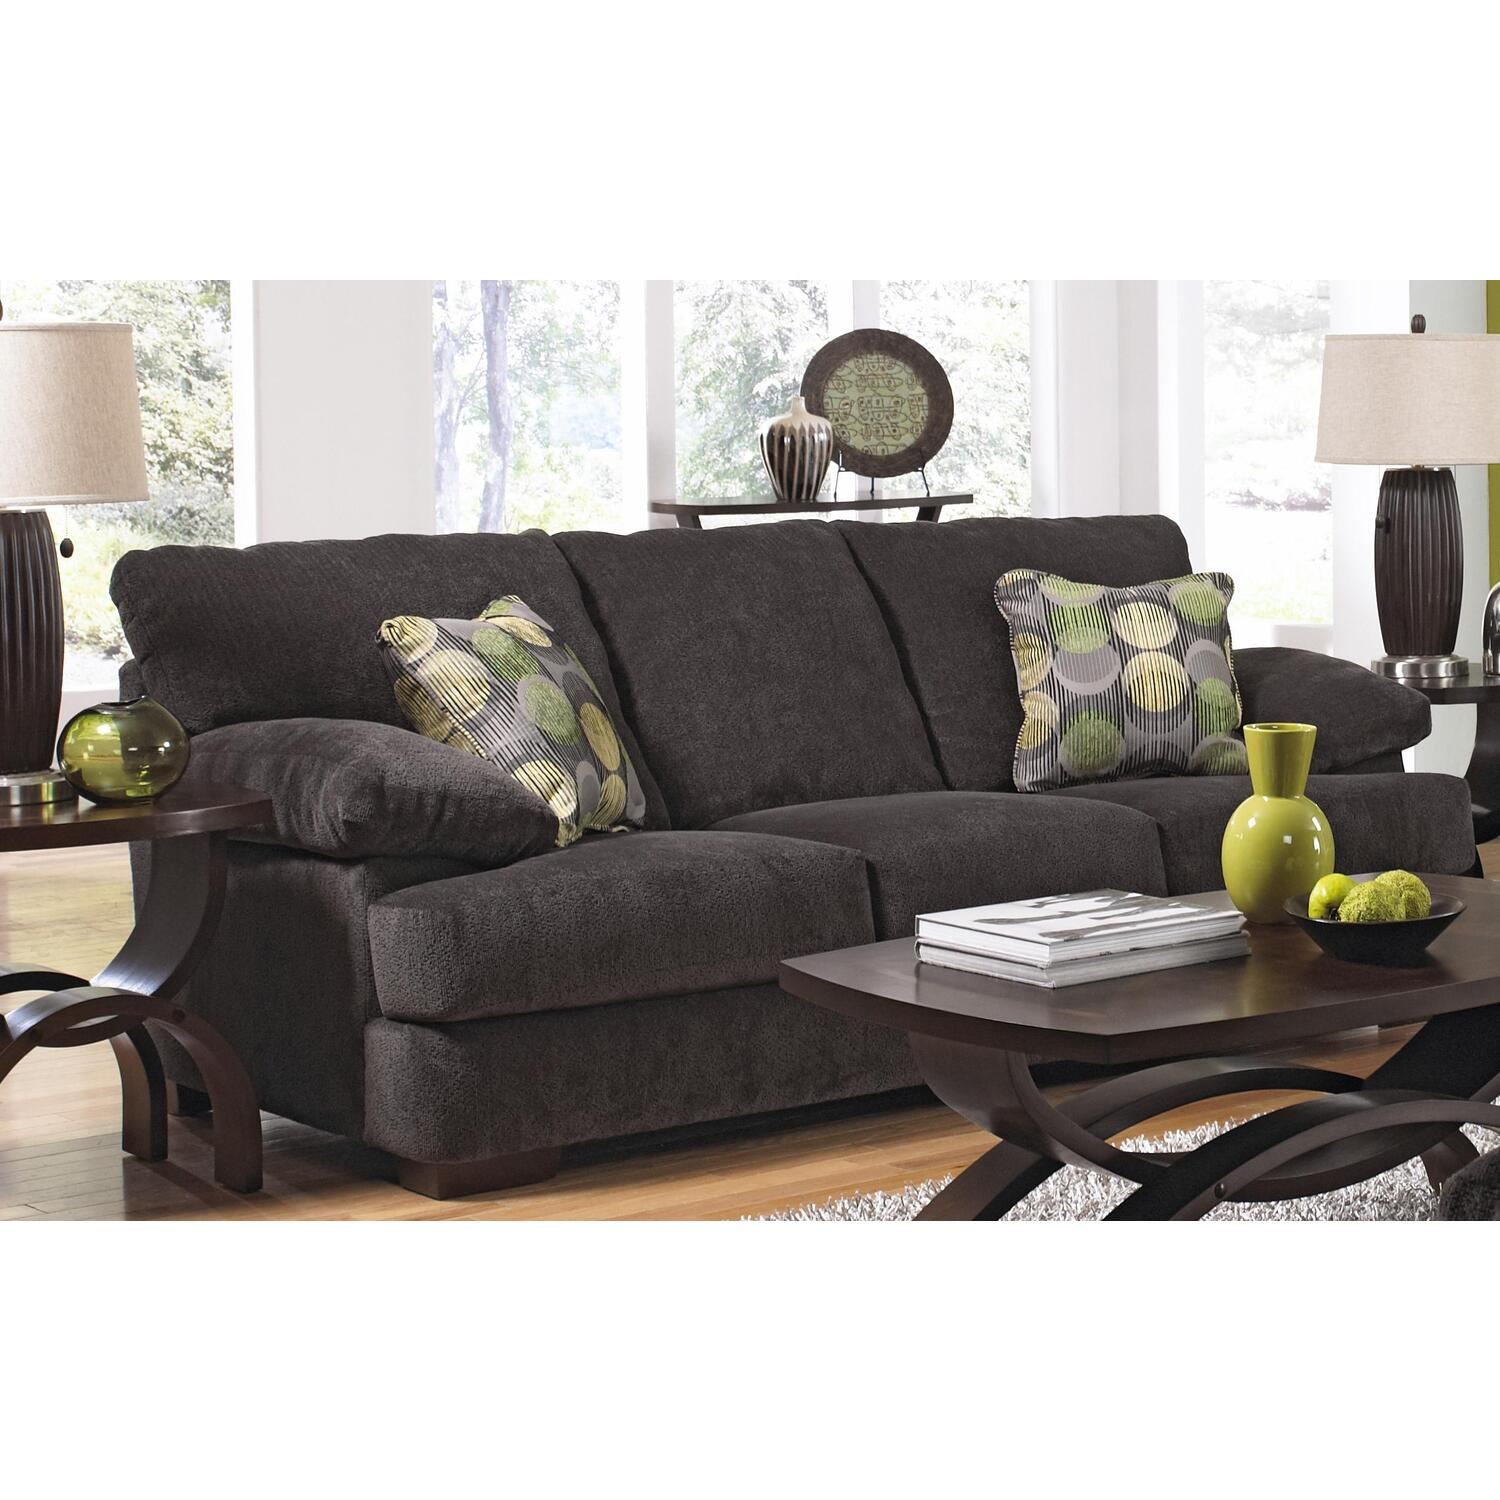 Jackson Furniture Armstrong Sofa By Oj Commerce 4502 03